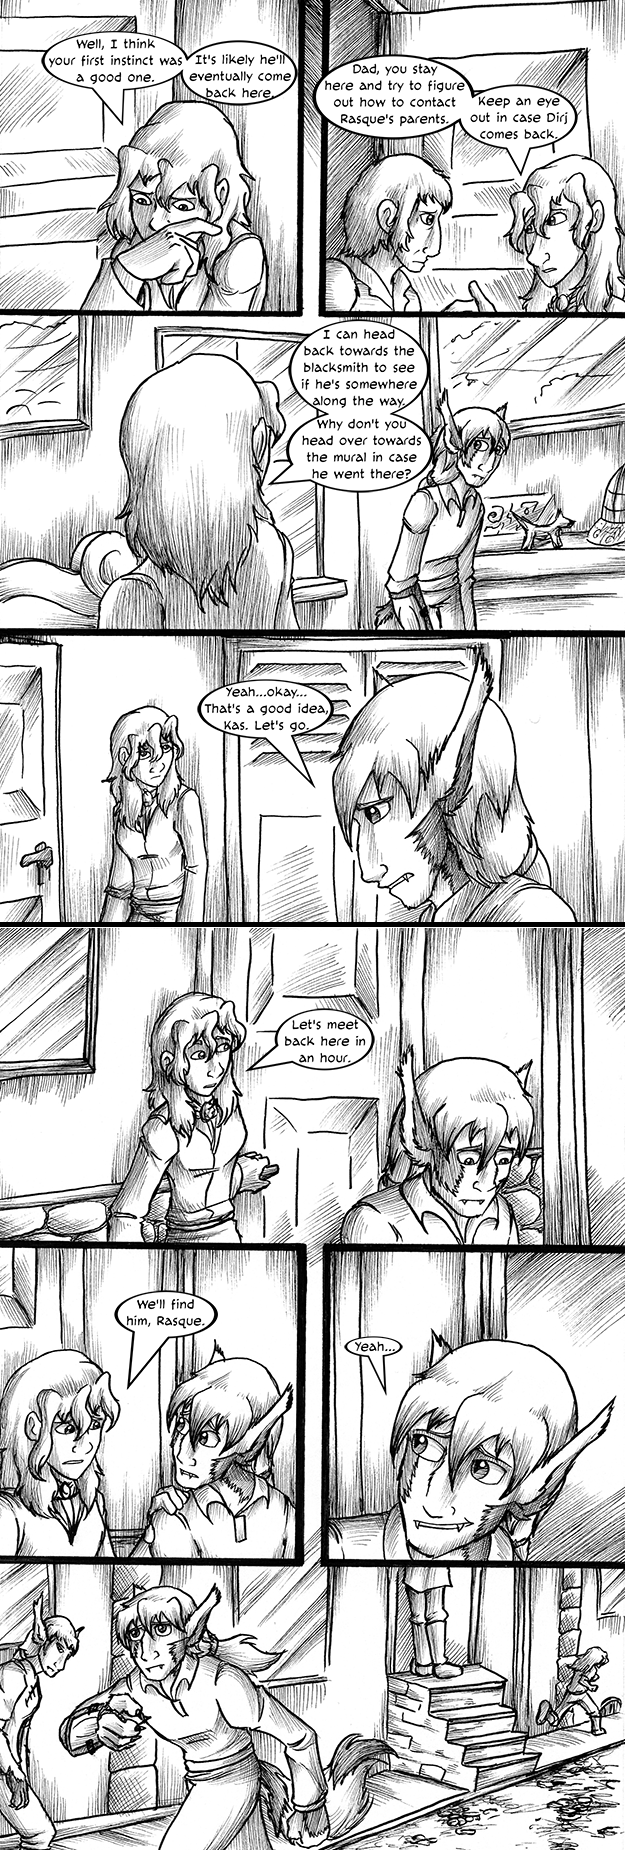 08 Page 10/11